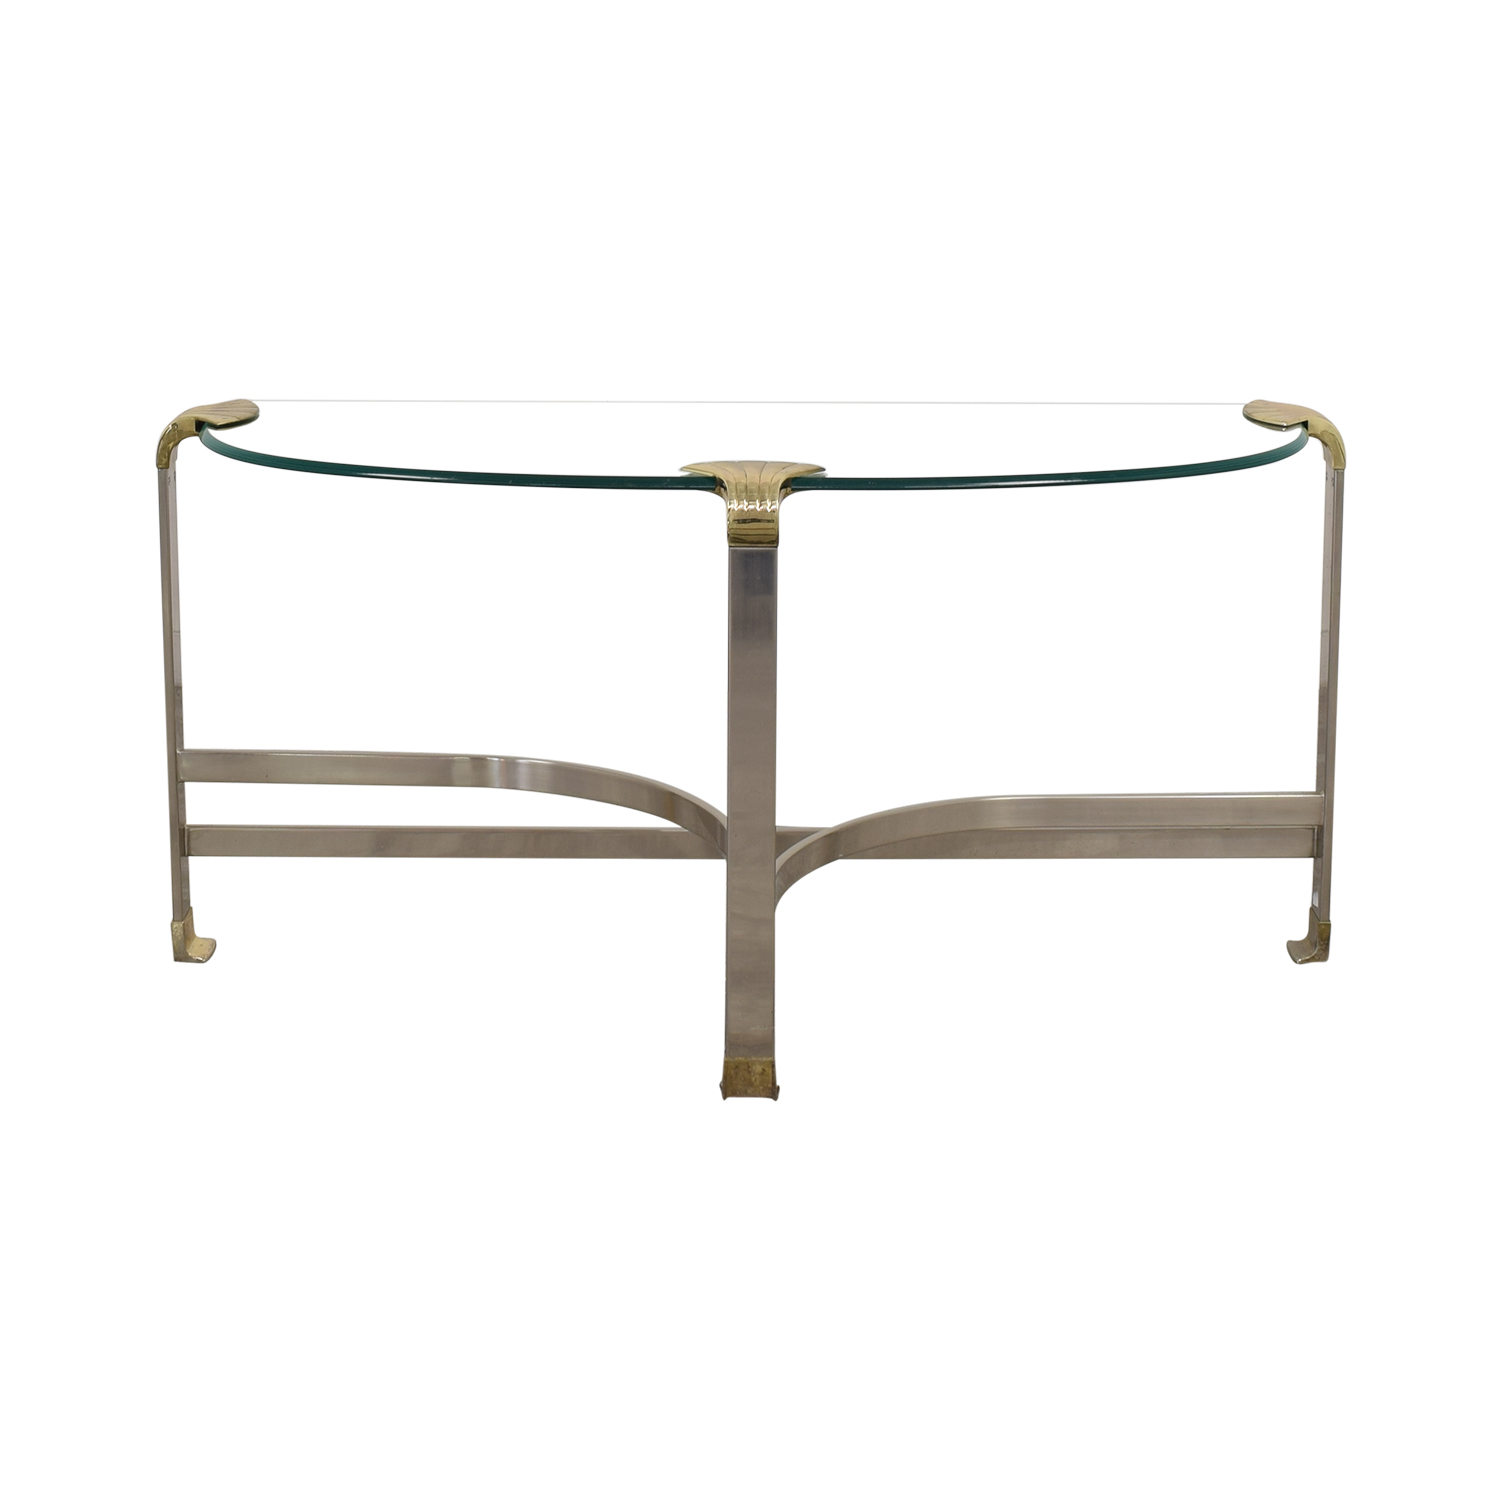 Aeon Furniture Aeon Furniture Side Table silver & gold